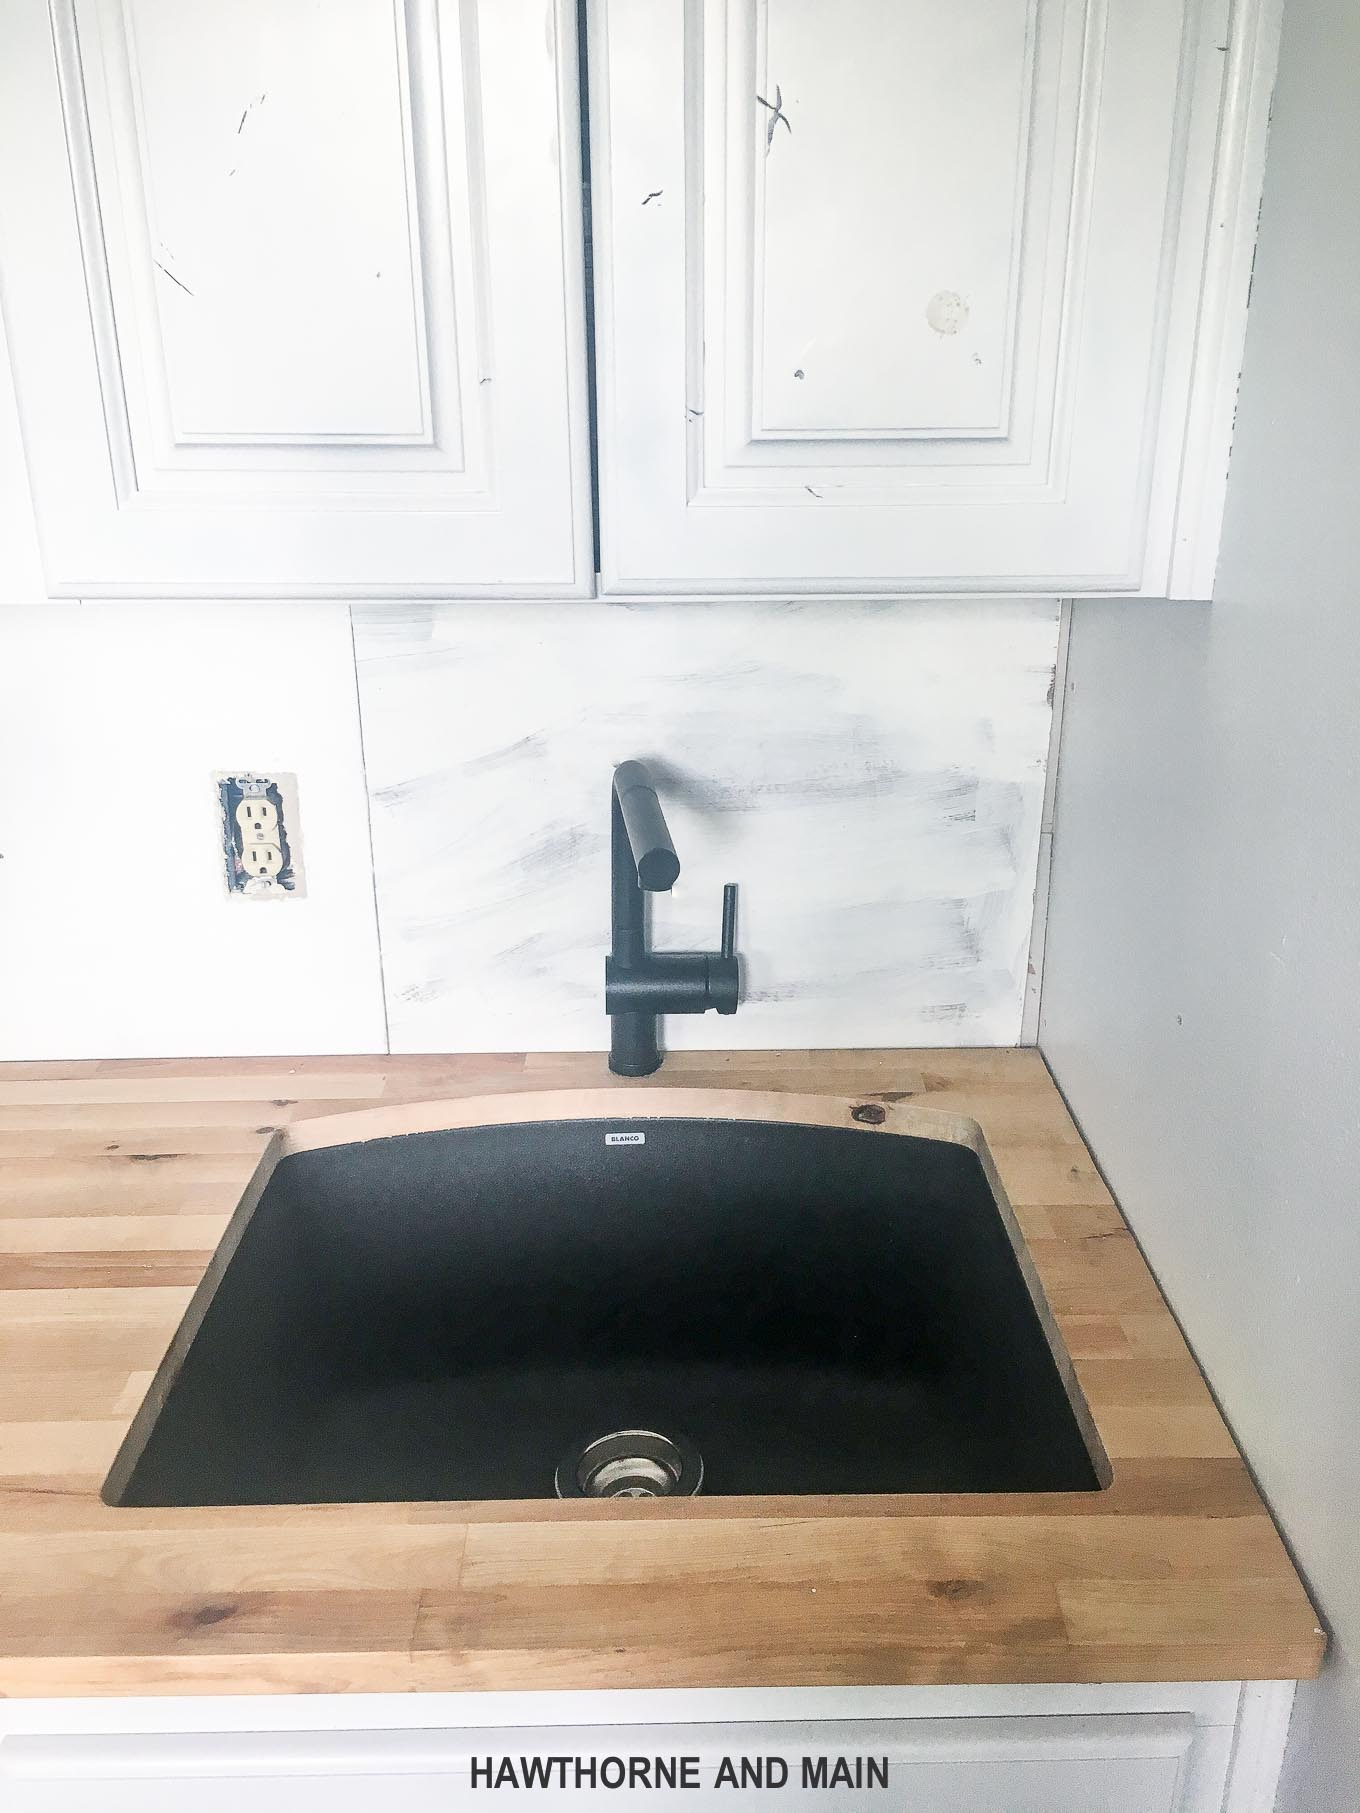 How to install an undermount sink...and learning when to DIY and when to get help. Part of DIY is learning when to get help on projects. DIY undermount sink